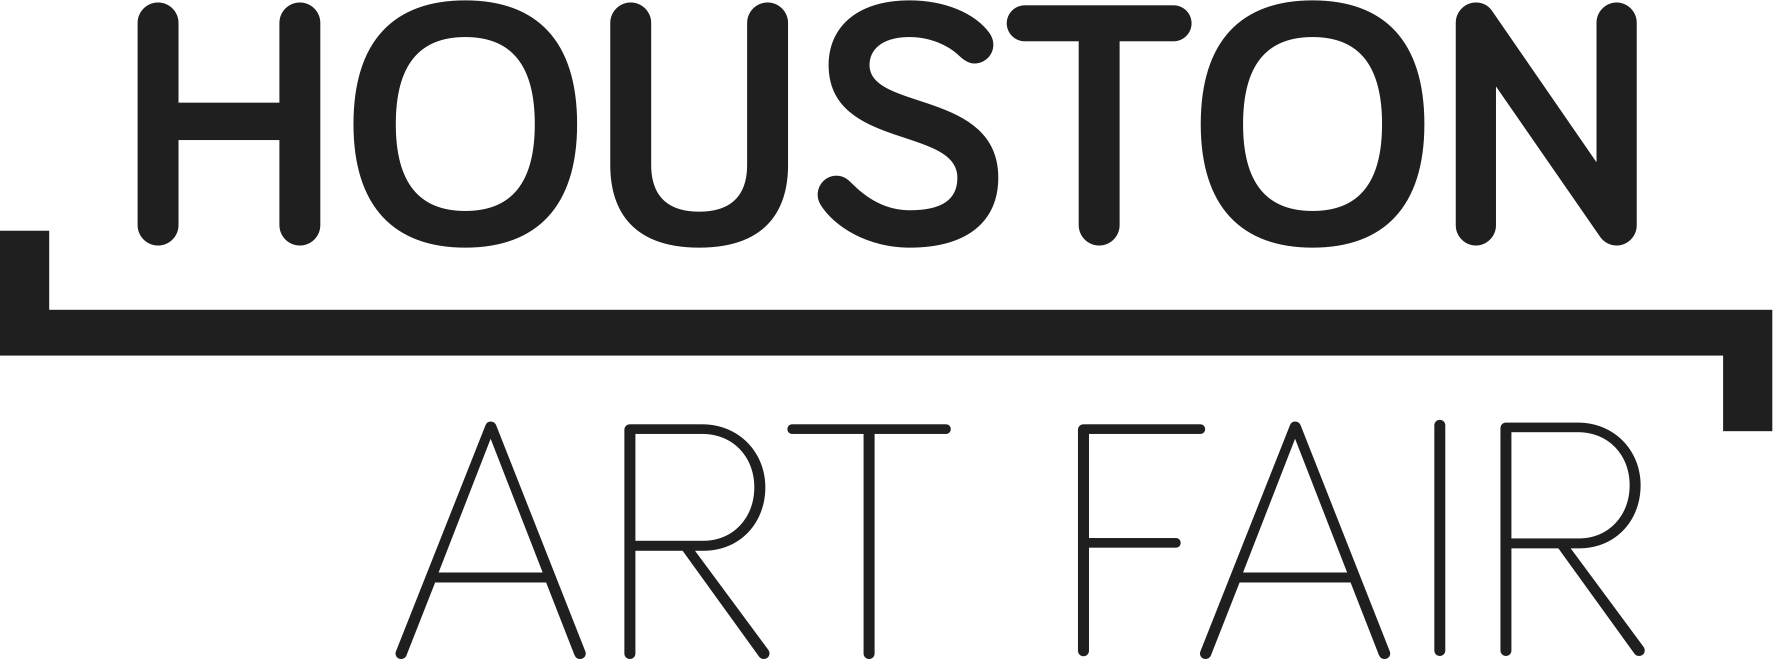 Tickets for Houston Art Fair- First Look Complimentary Access | Cultural Partners in Houston from ShowClix